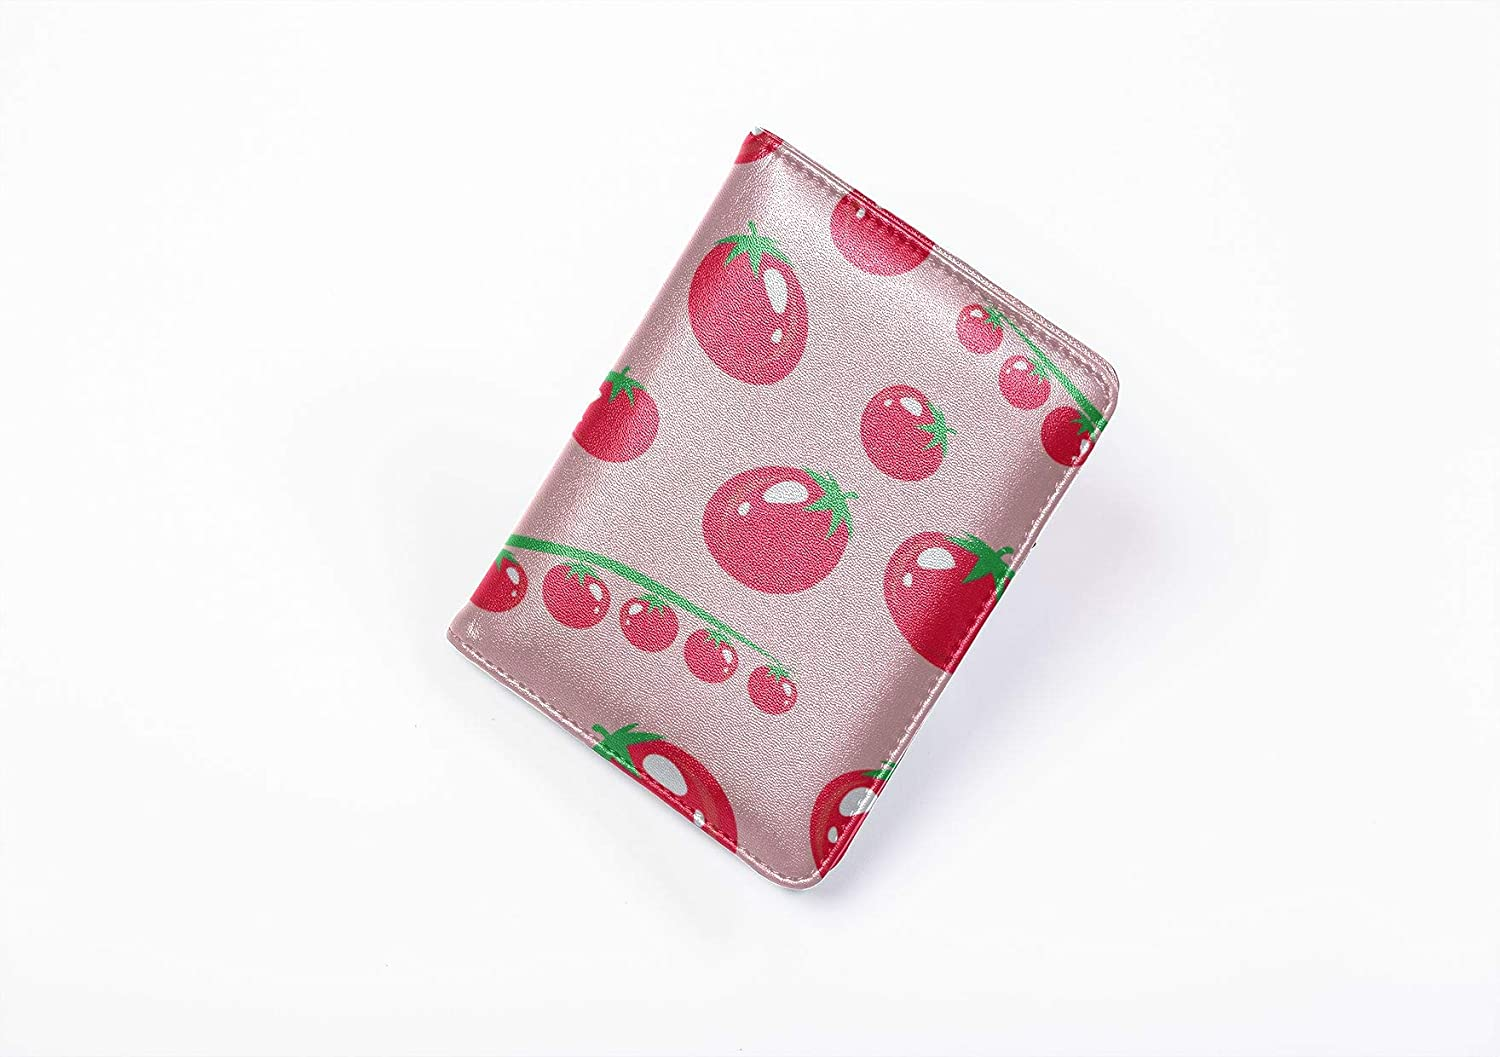 Luxury Passport Cover Fashion Vegetables Tomatoes Zipper Passport Cover Multi Purpose Print Leather Passport Case Travel Wallets For Unisex 5.51x4.37 Inch